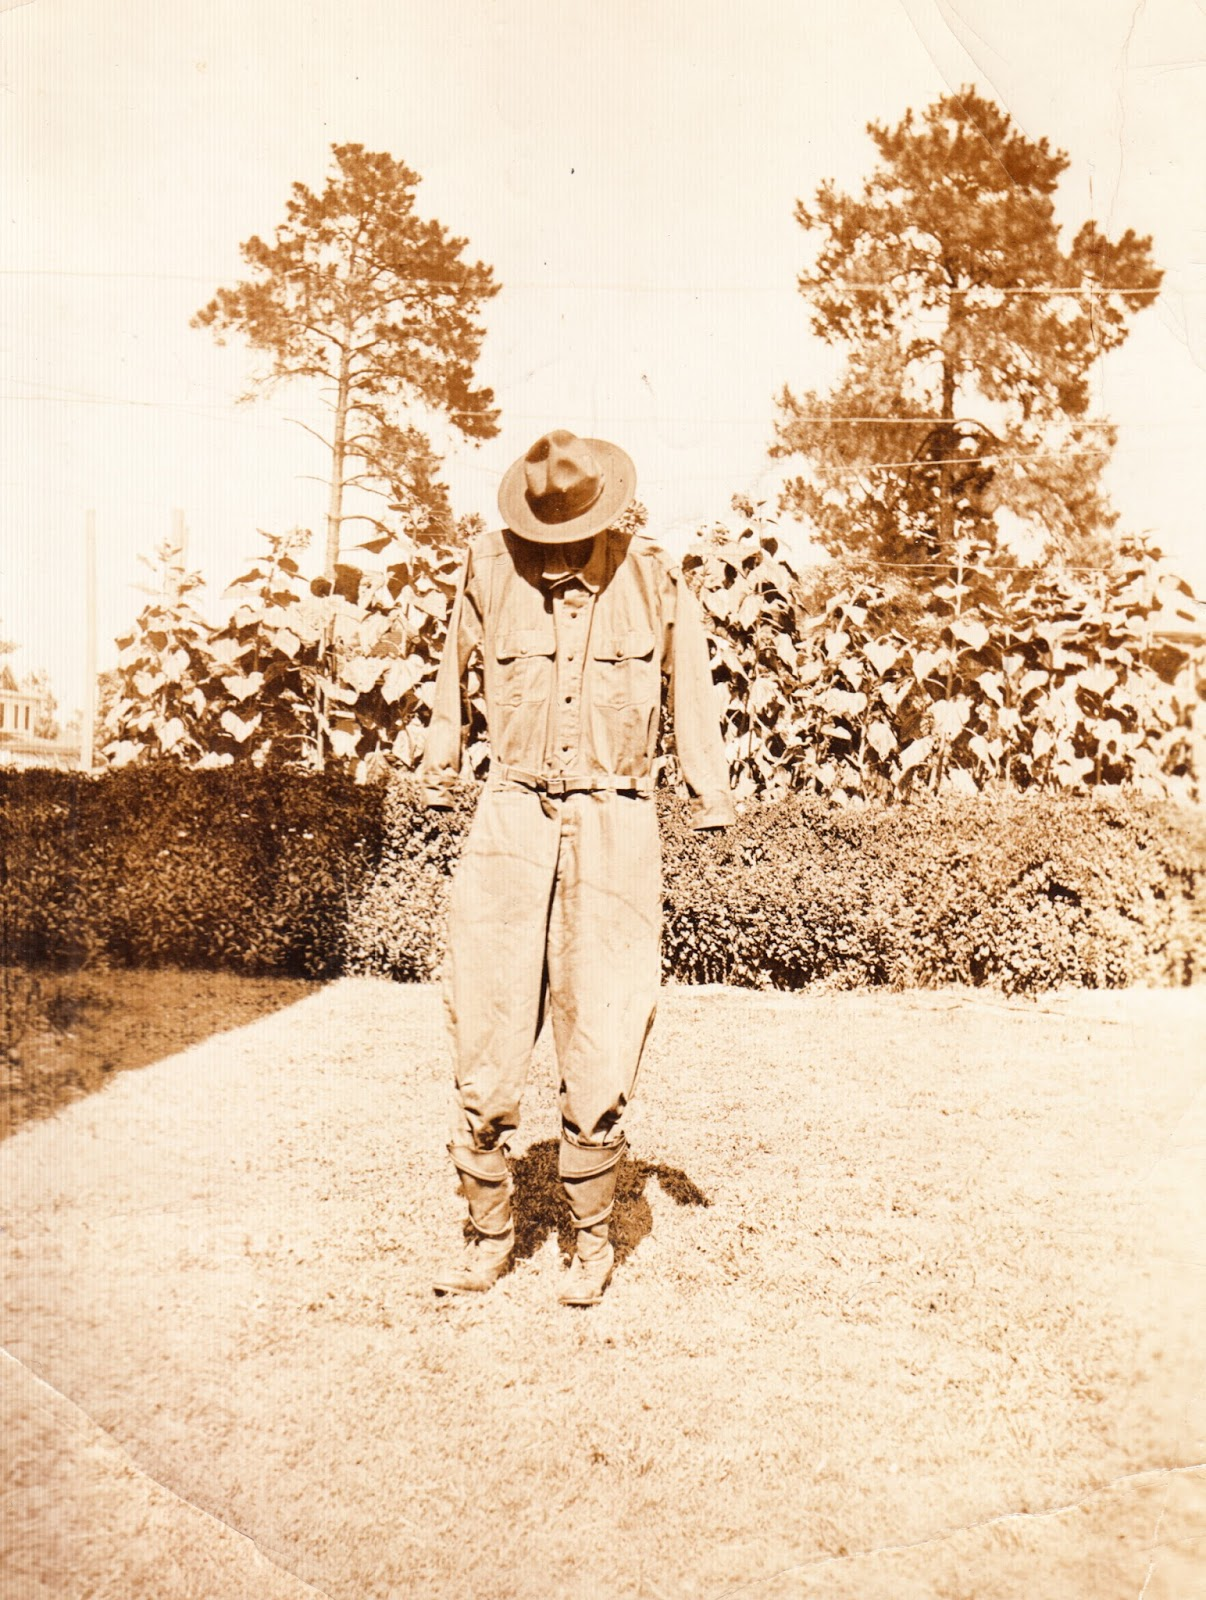 dull tool dim bulb antique scarecrow photographic essay ephemeral antique scarecrow photographic essay ephemeral folk art sculpture at the farm collection jim linderman